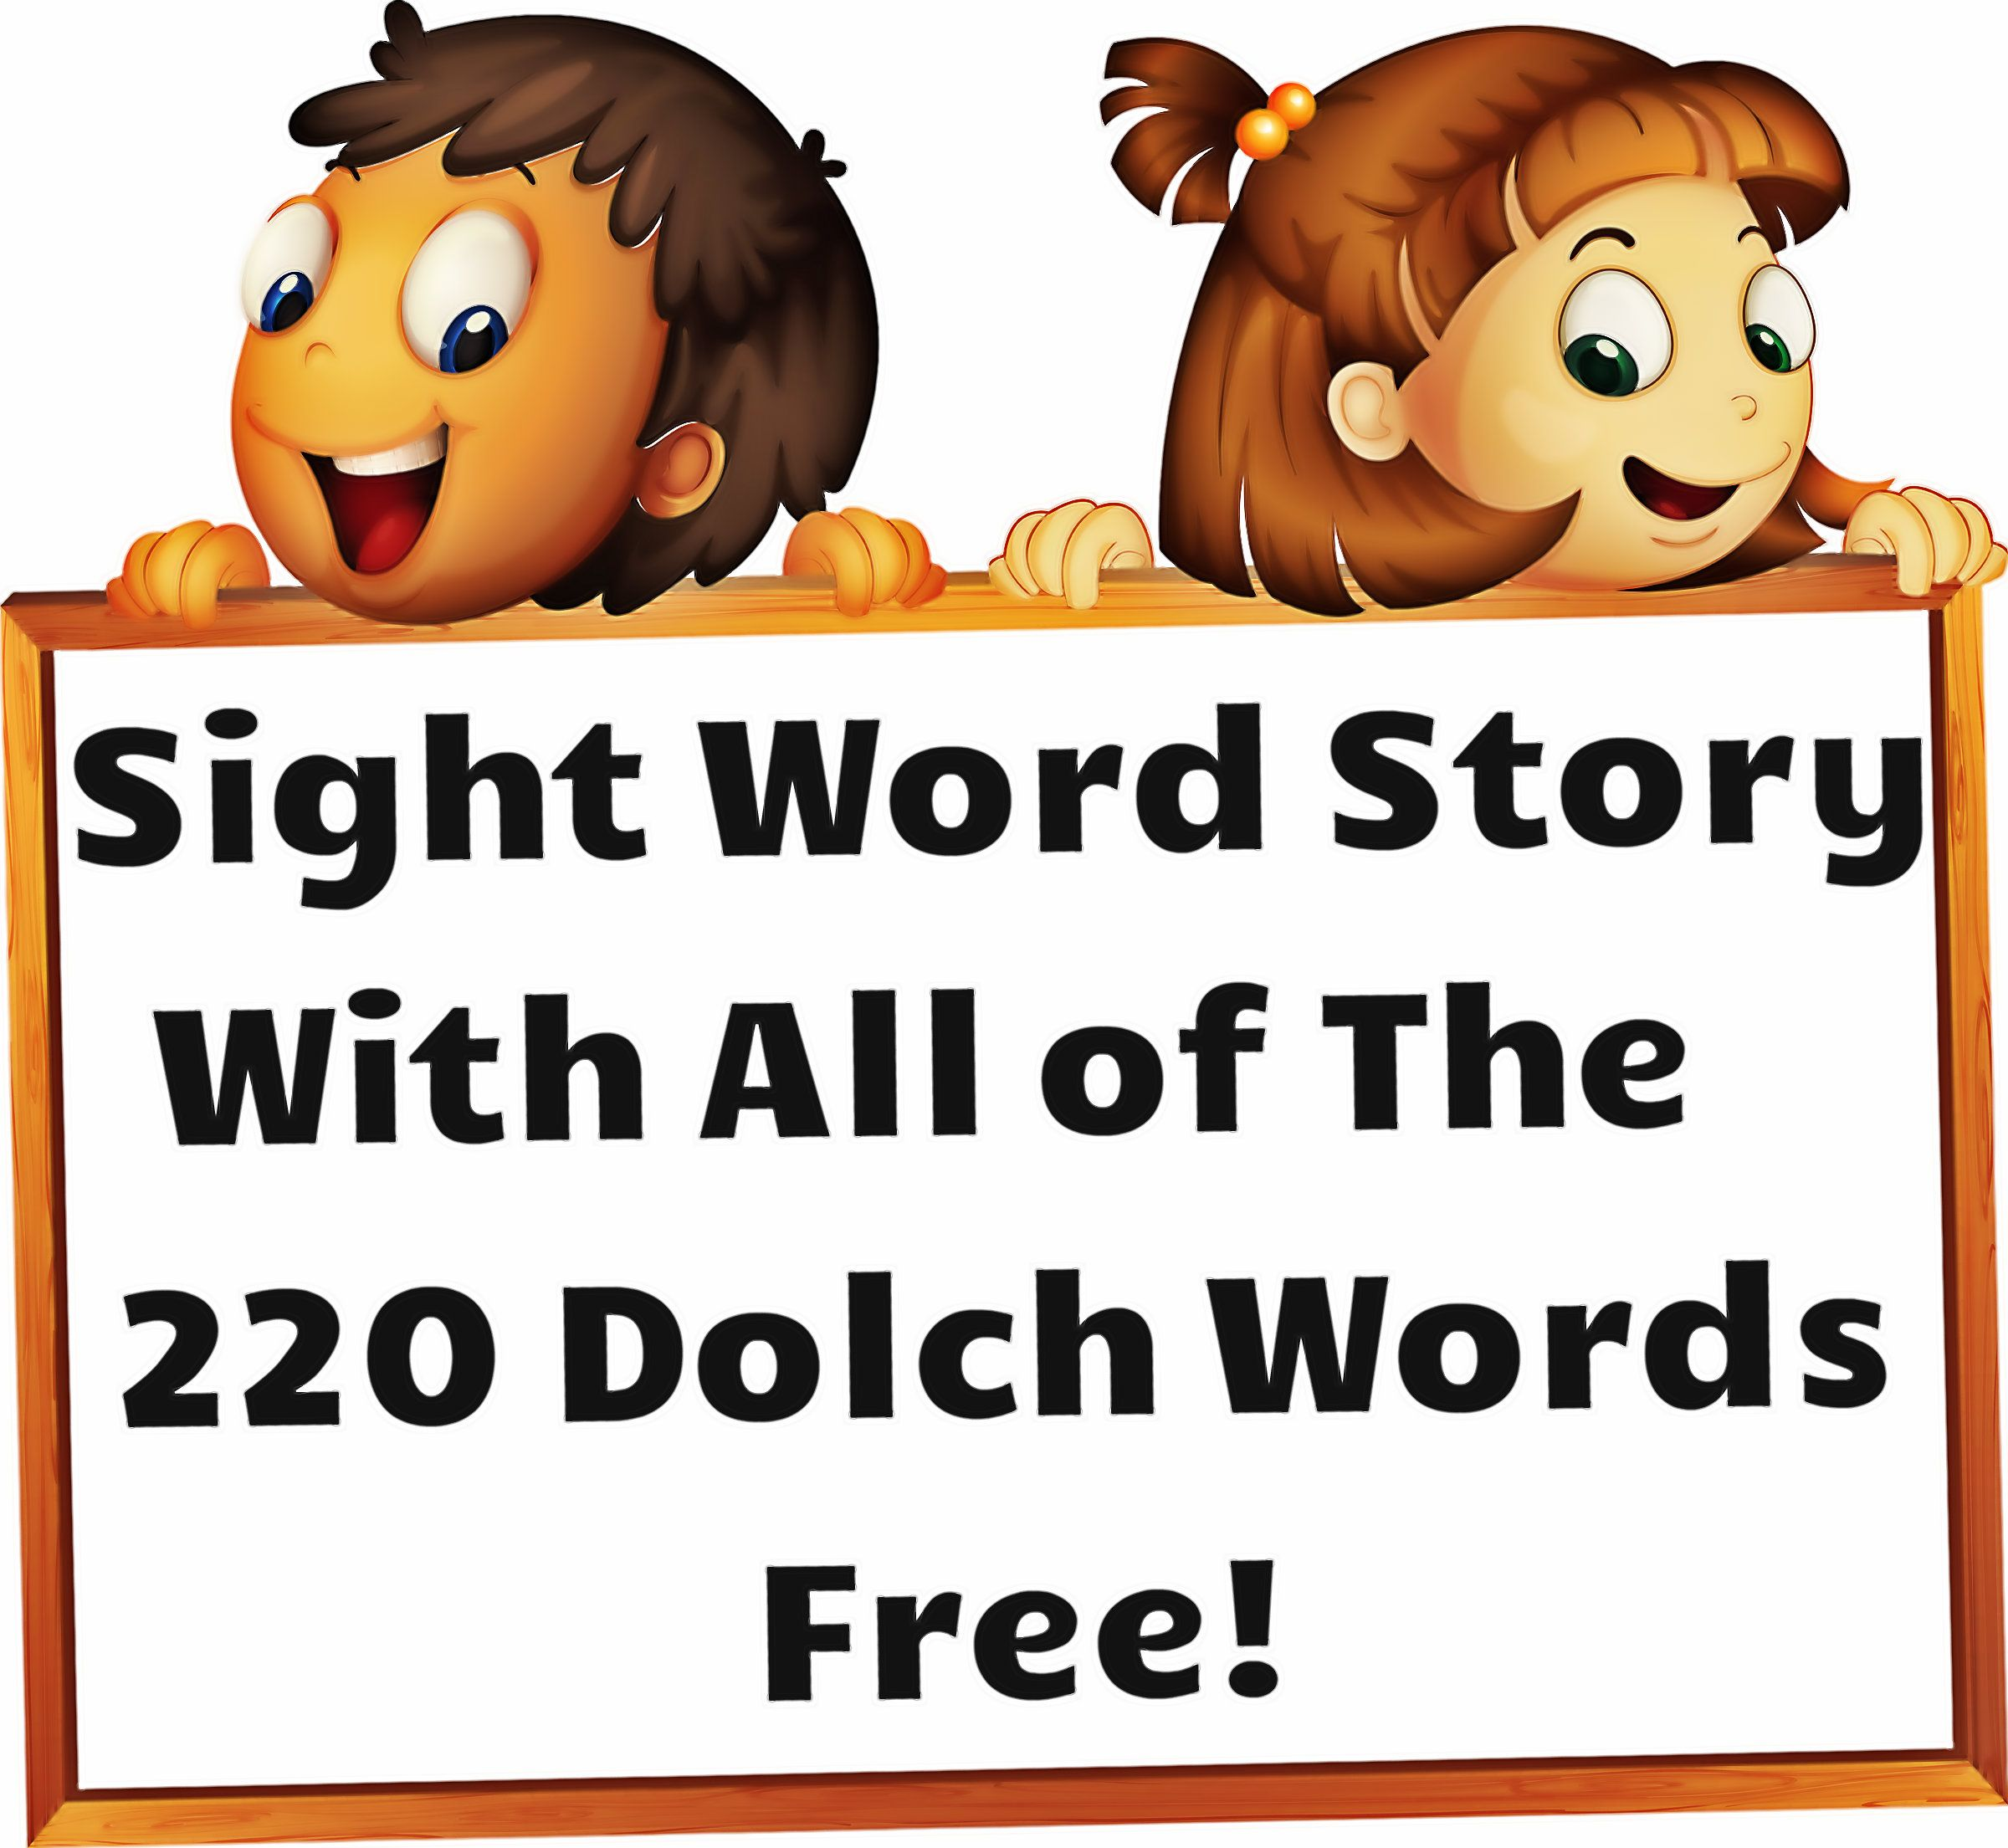 Worksheet Dolch Word Activities sight word story with all 220 dolch words free download childrens books activities and resources pinterest apraxia